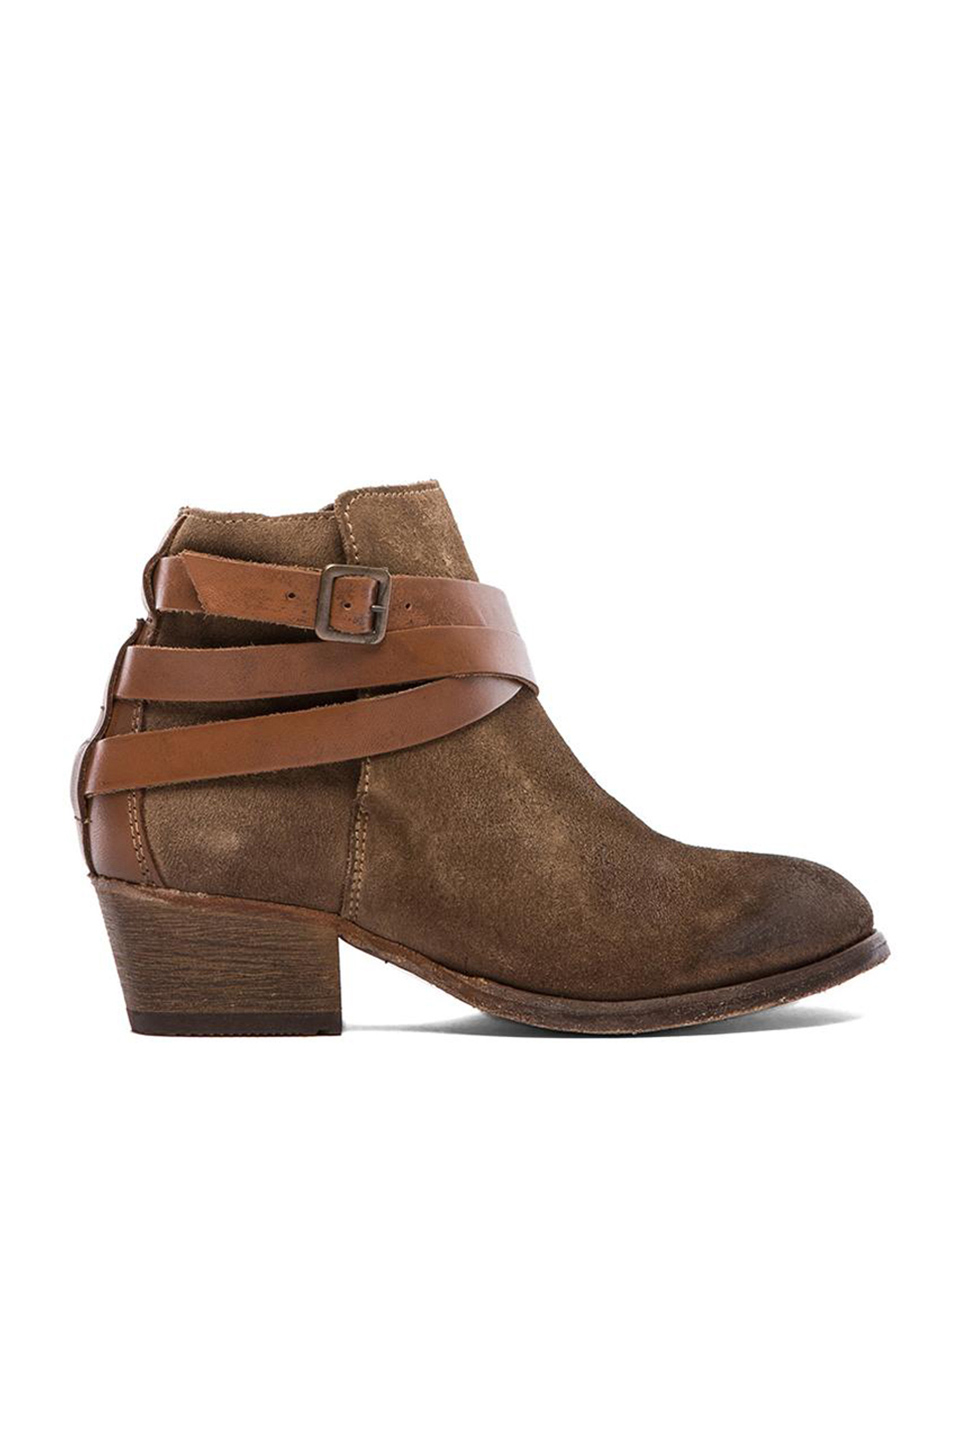 H by Hudson Horrigan Multi Suede Bootie in Beige